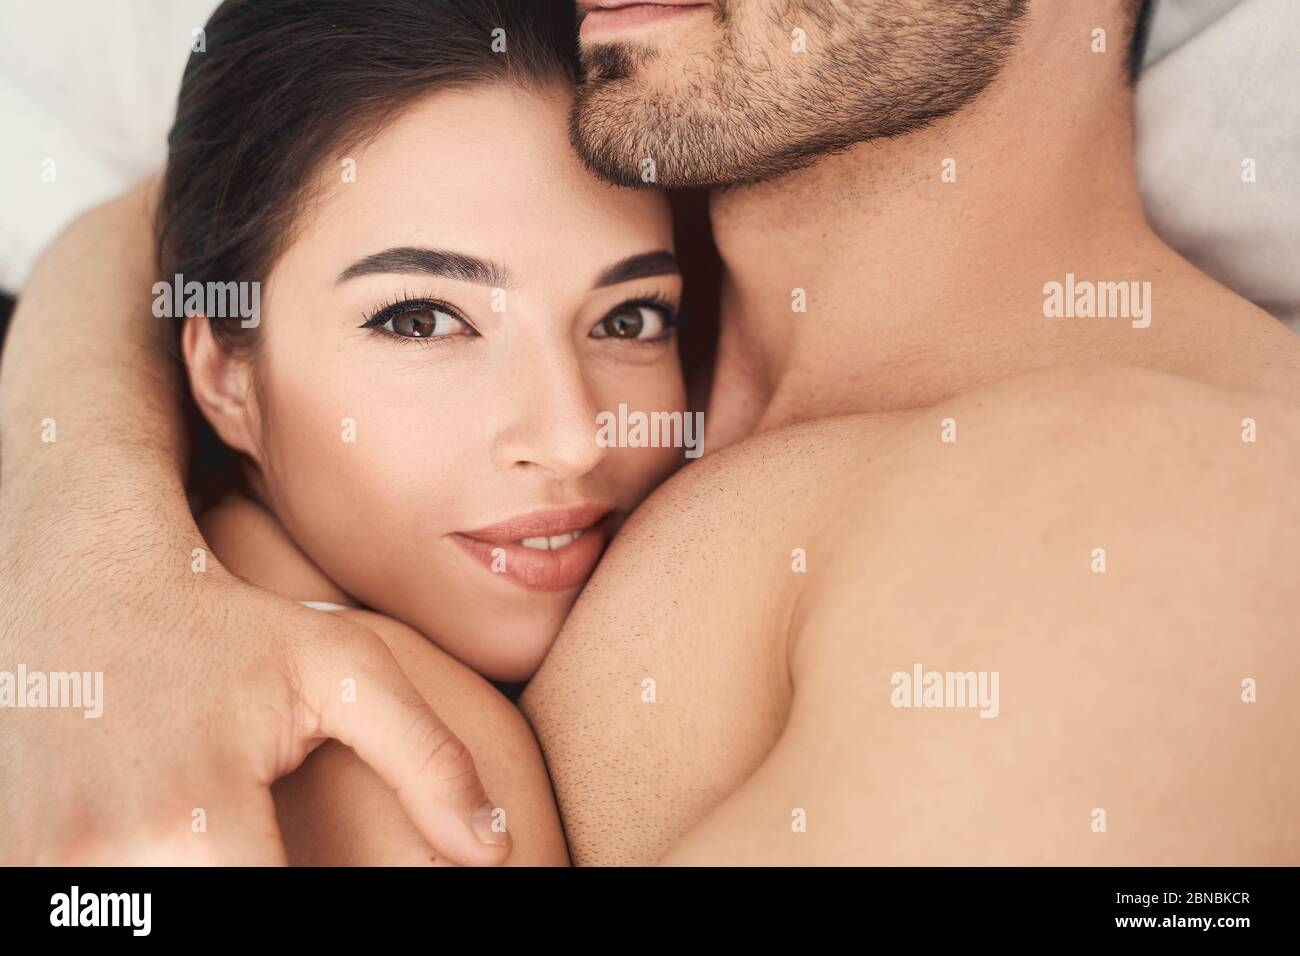 Mans woman chest kissing What Does